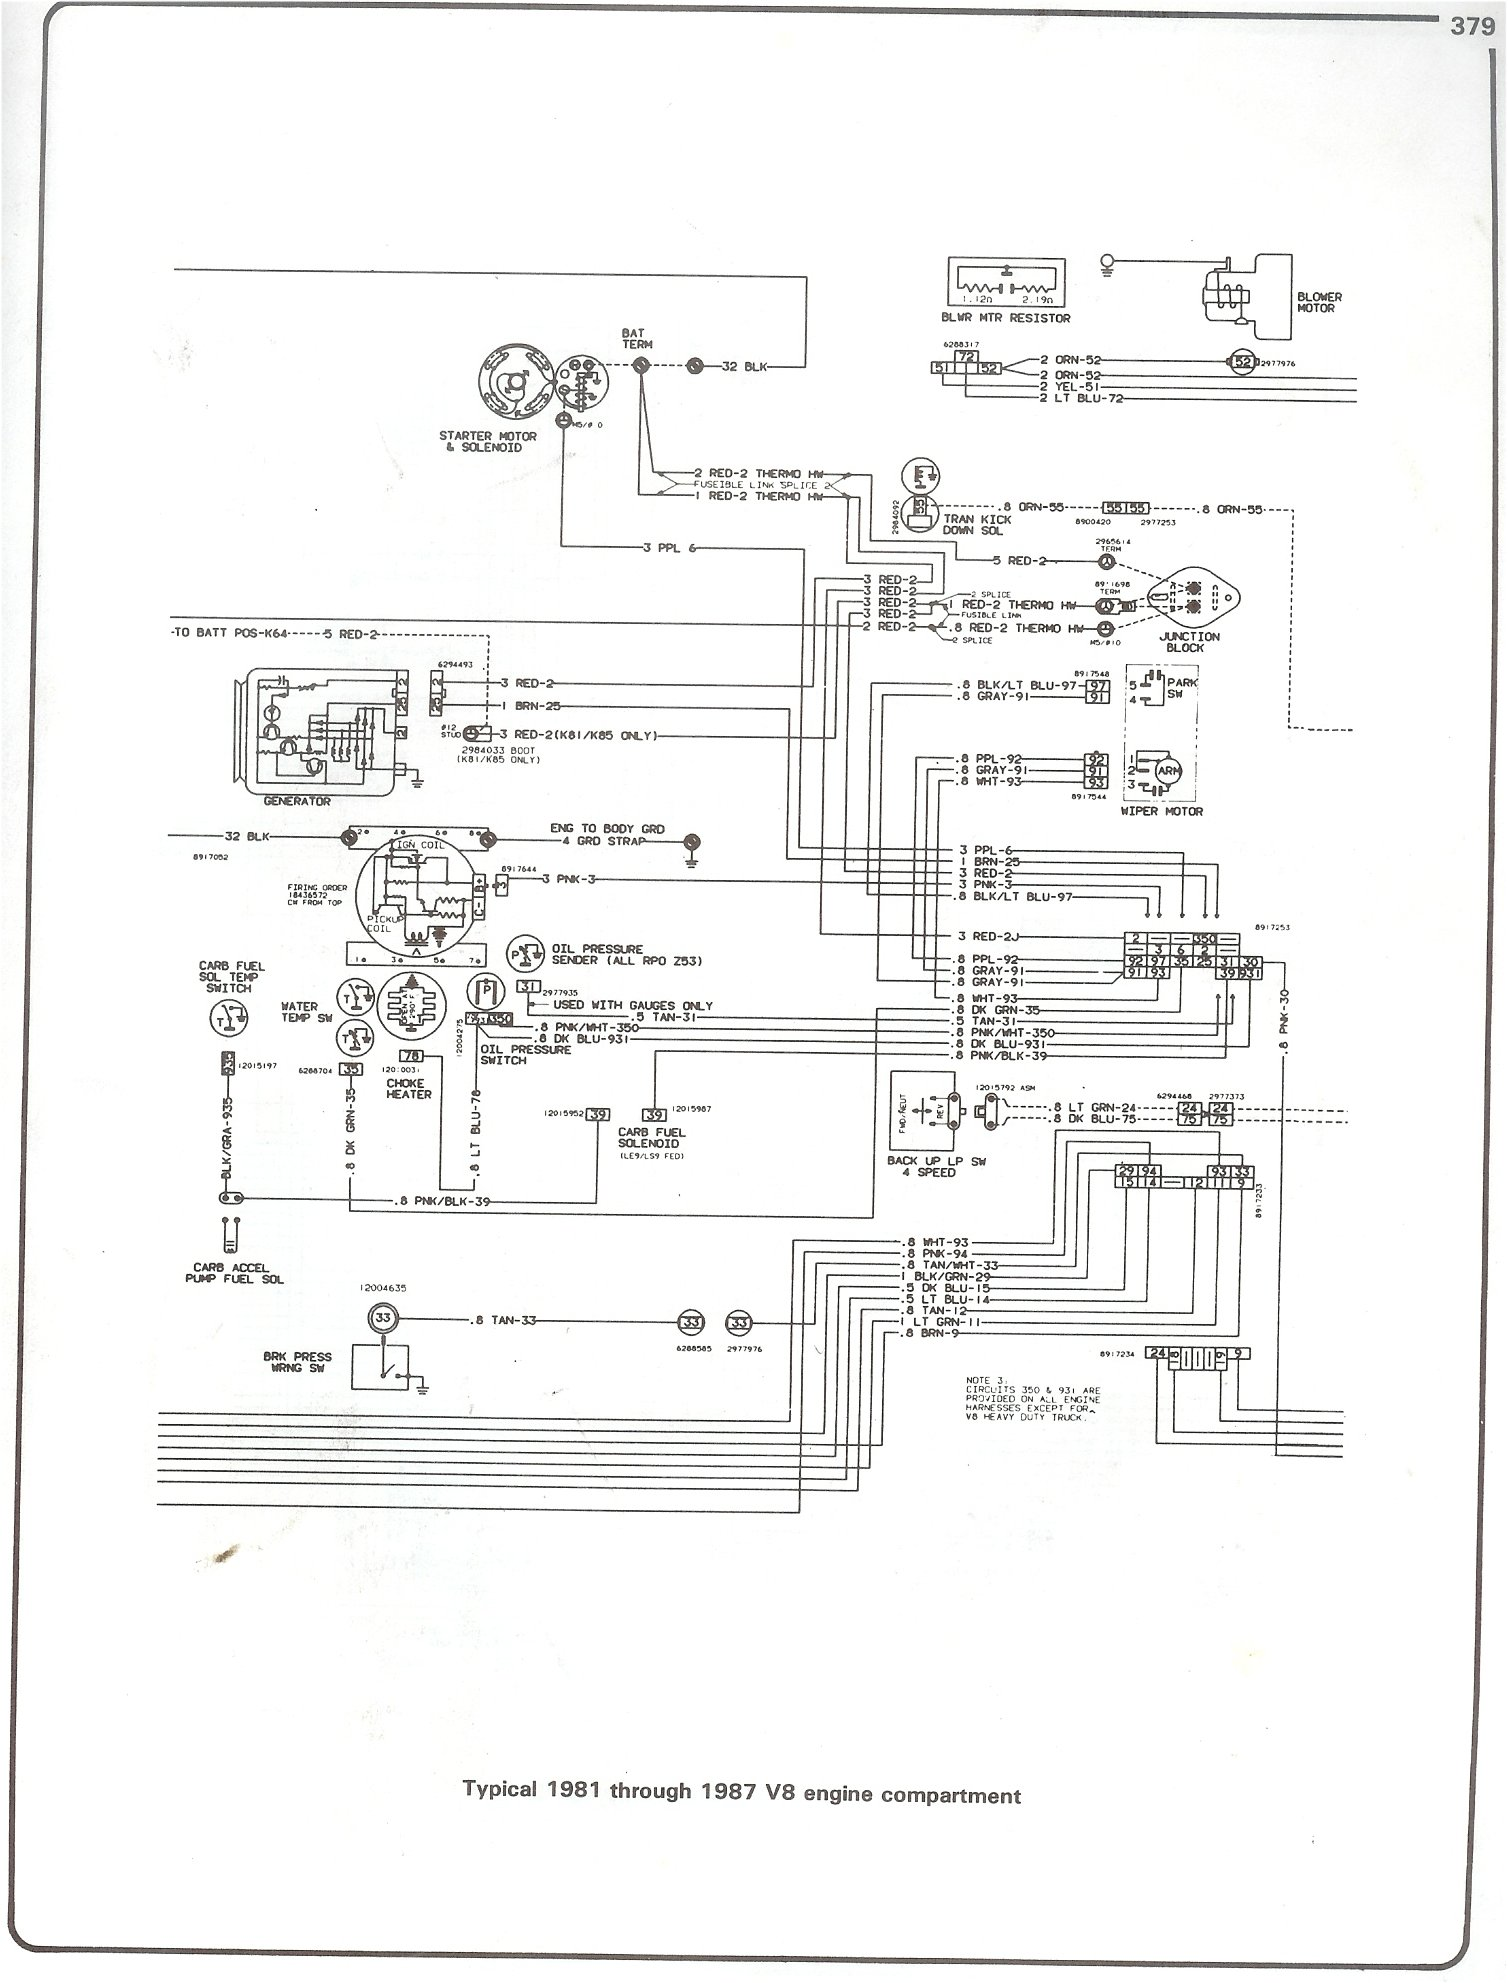 81 87_V8_engine complete 73 87 wiring diagrams S10 Wiring Schematic at readyjetset.co